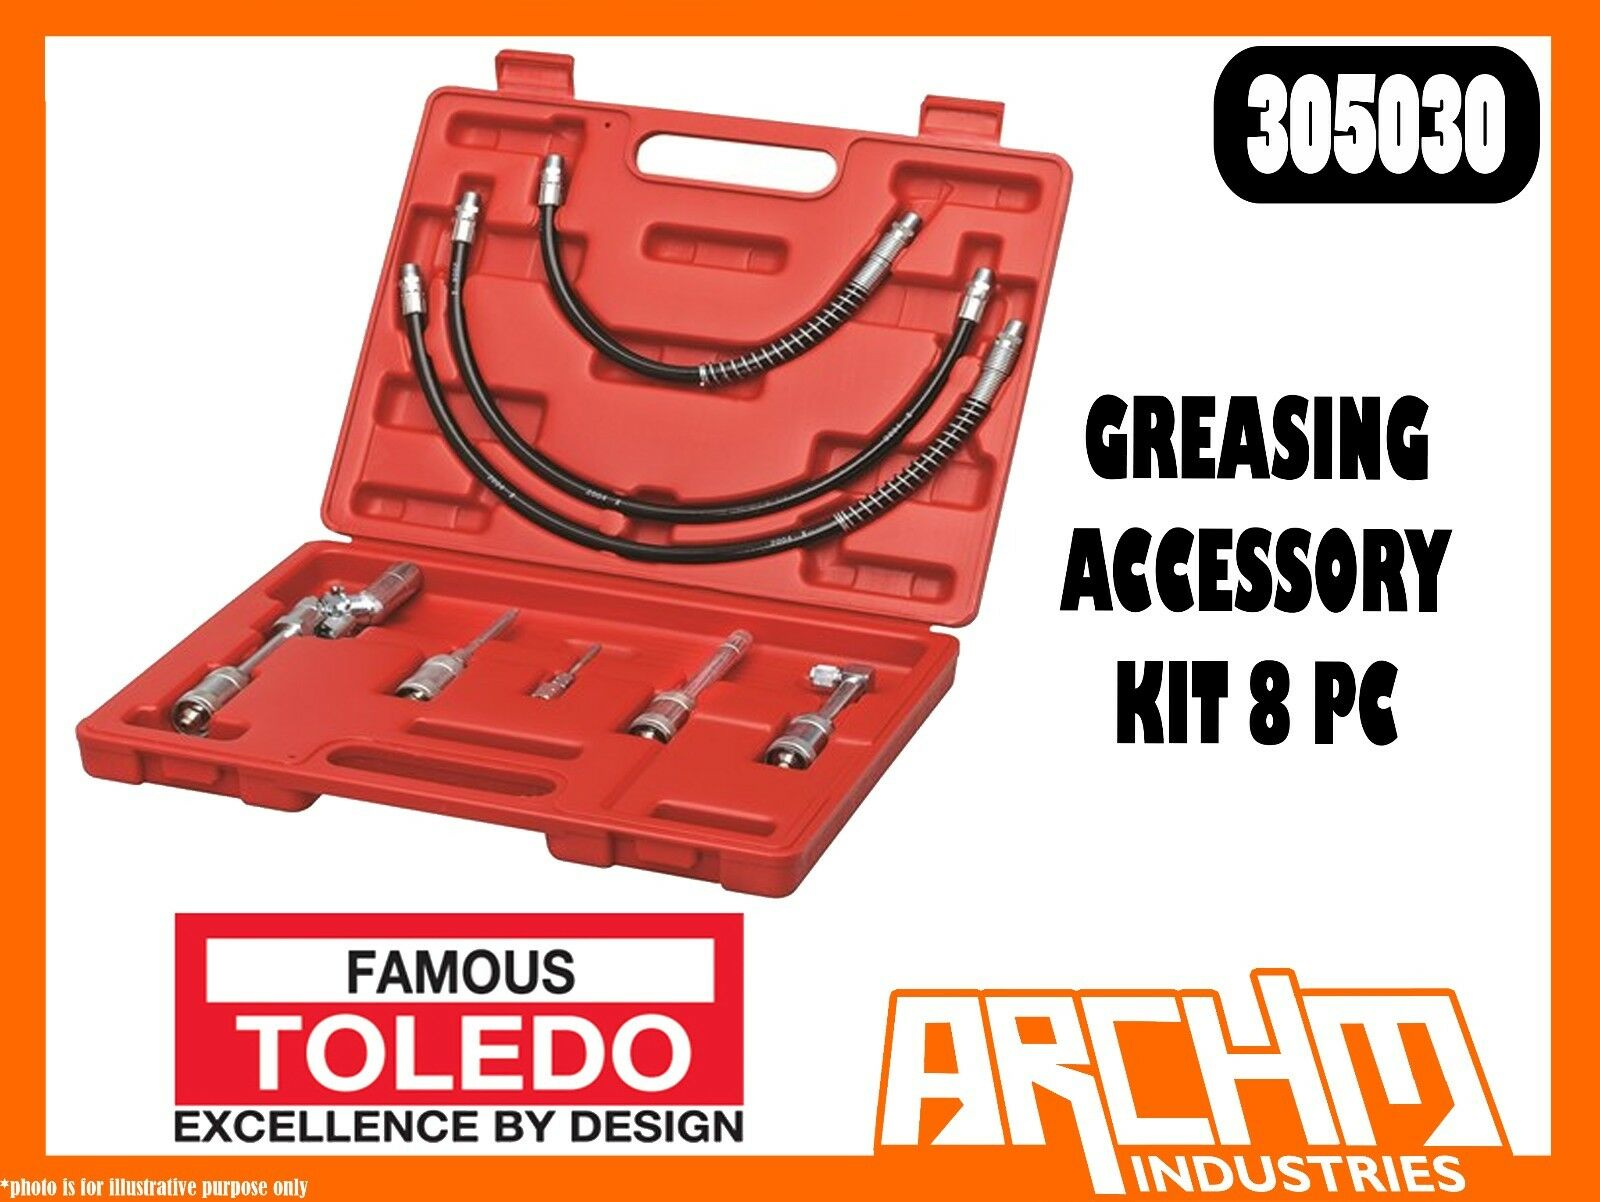 TOLEDO 305030 - GREASING ACCESSORY KIT - 8 PC - ADAPTORS LUBRICATION SERVICING